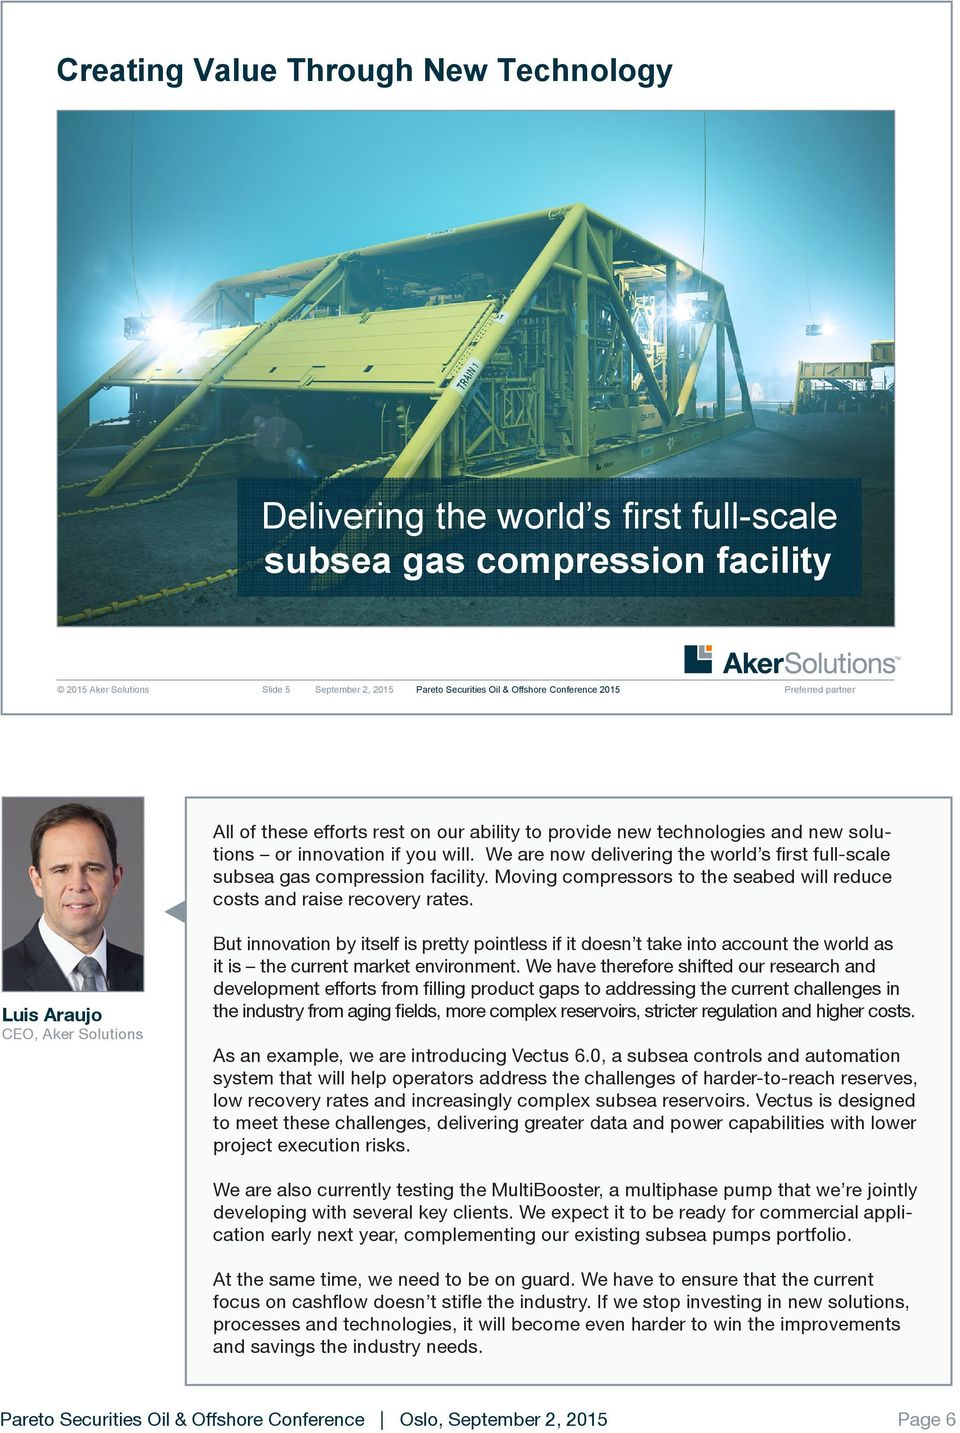 We are now delivering the world s first full-scale subsea gas compression facility. Moving compressors to the seabed will reduce costs and raise recovery rates.